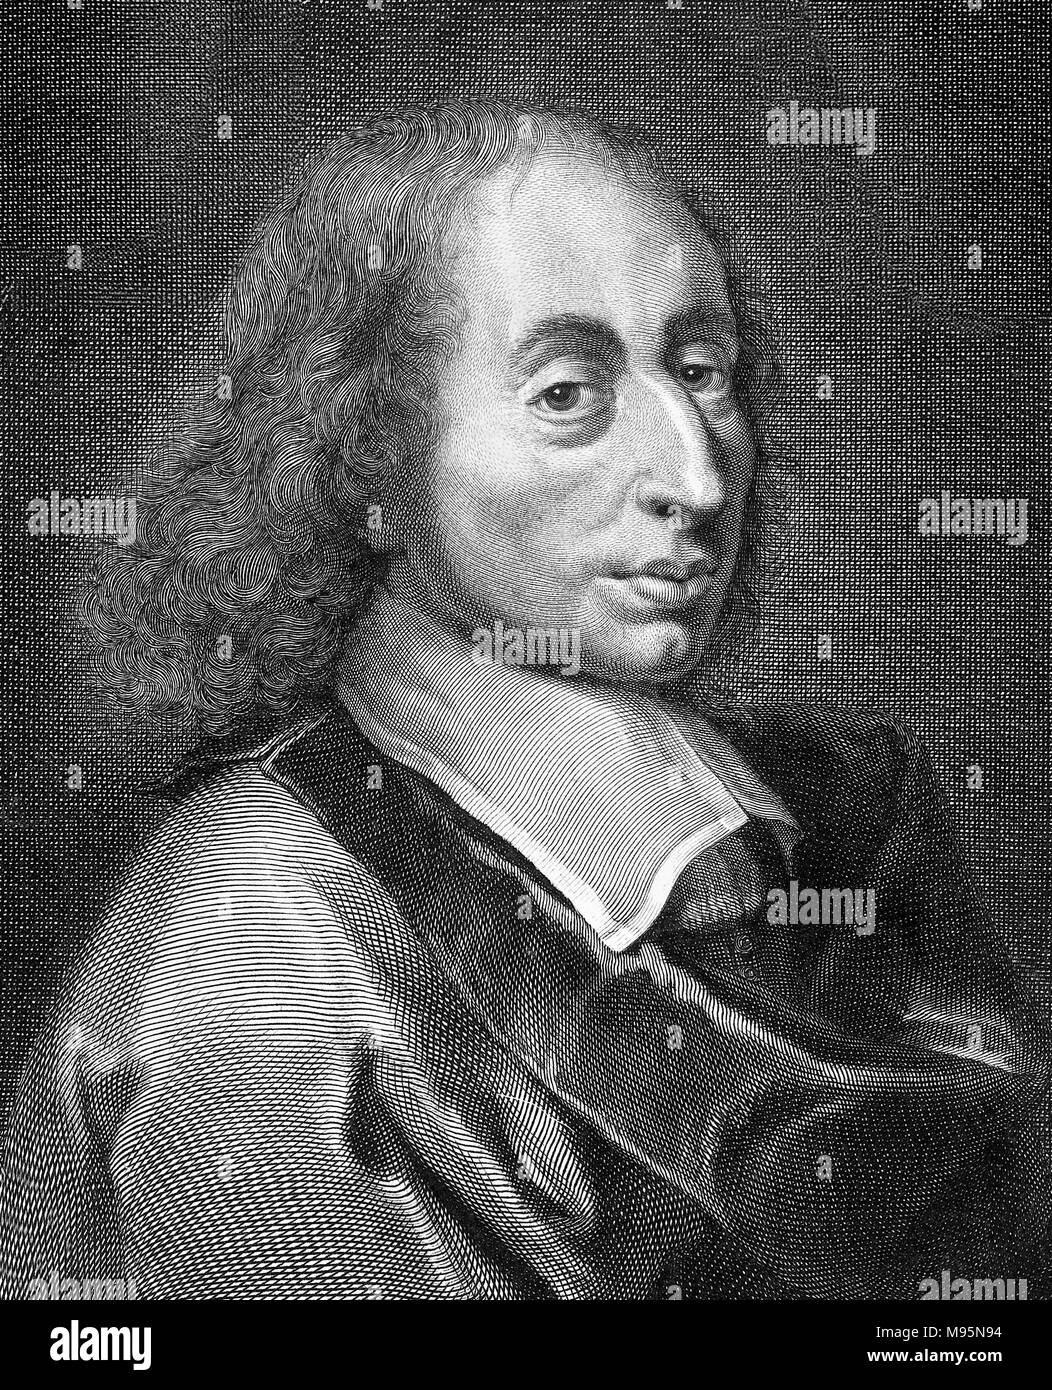 Blaise Pascal (1623-1662). Portrait of the French mathematician and  physicist.